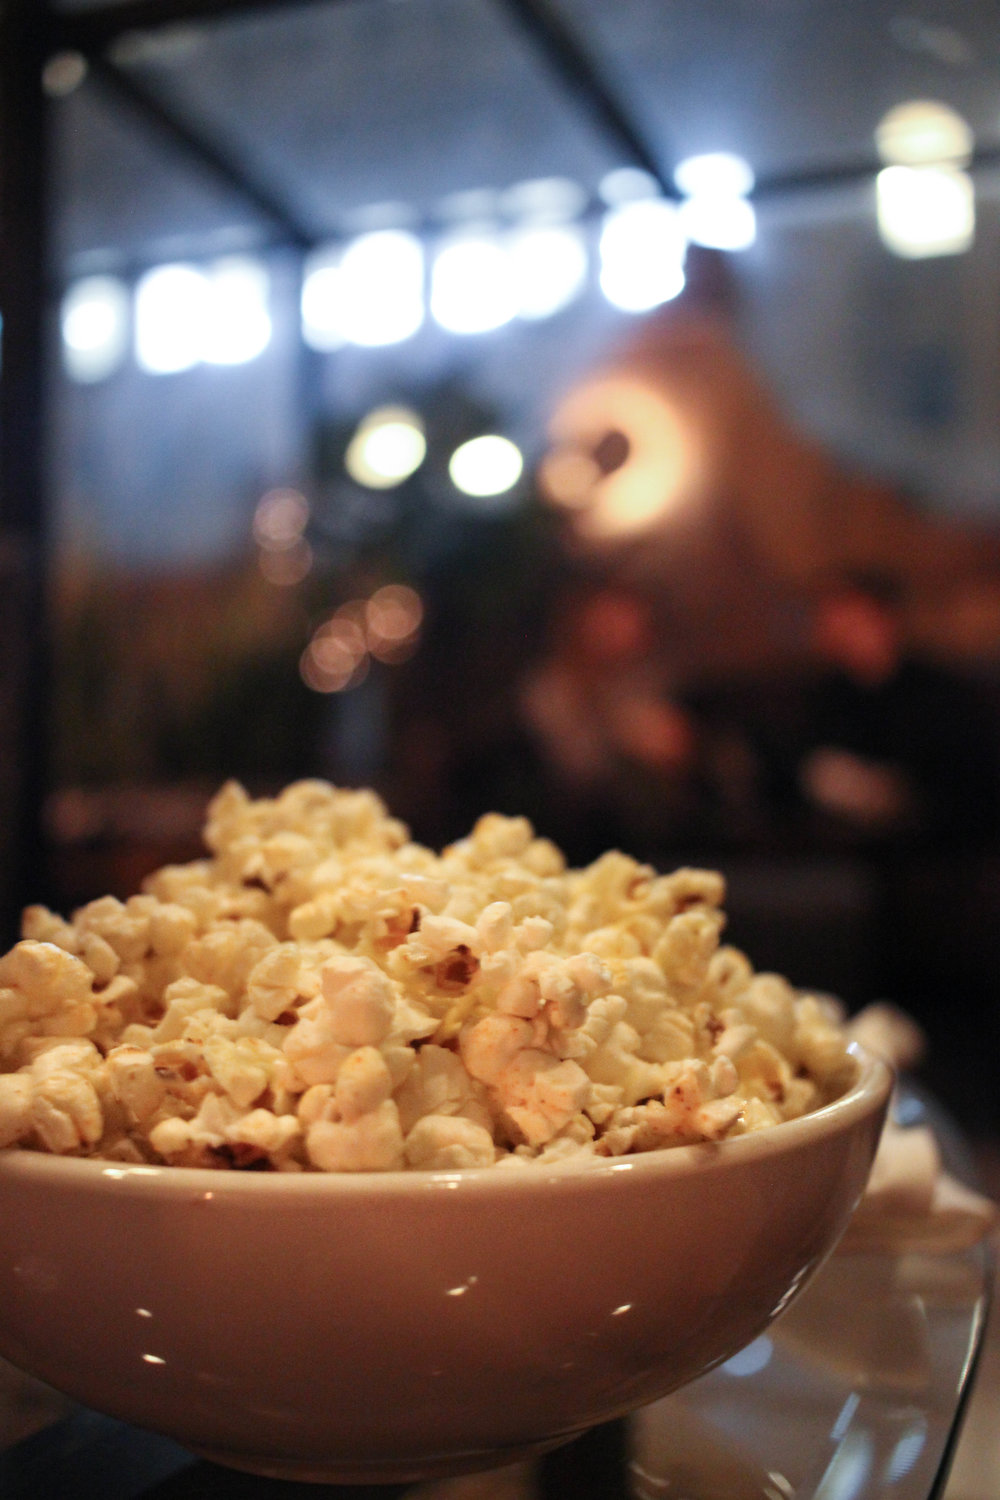 Truffled Popcorn; Seasoned with our special spicy mix,drizzled with Truffle Oil.